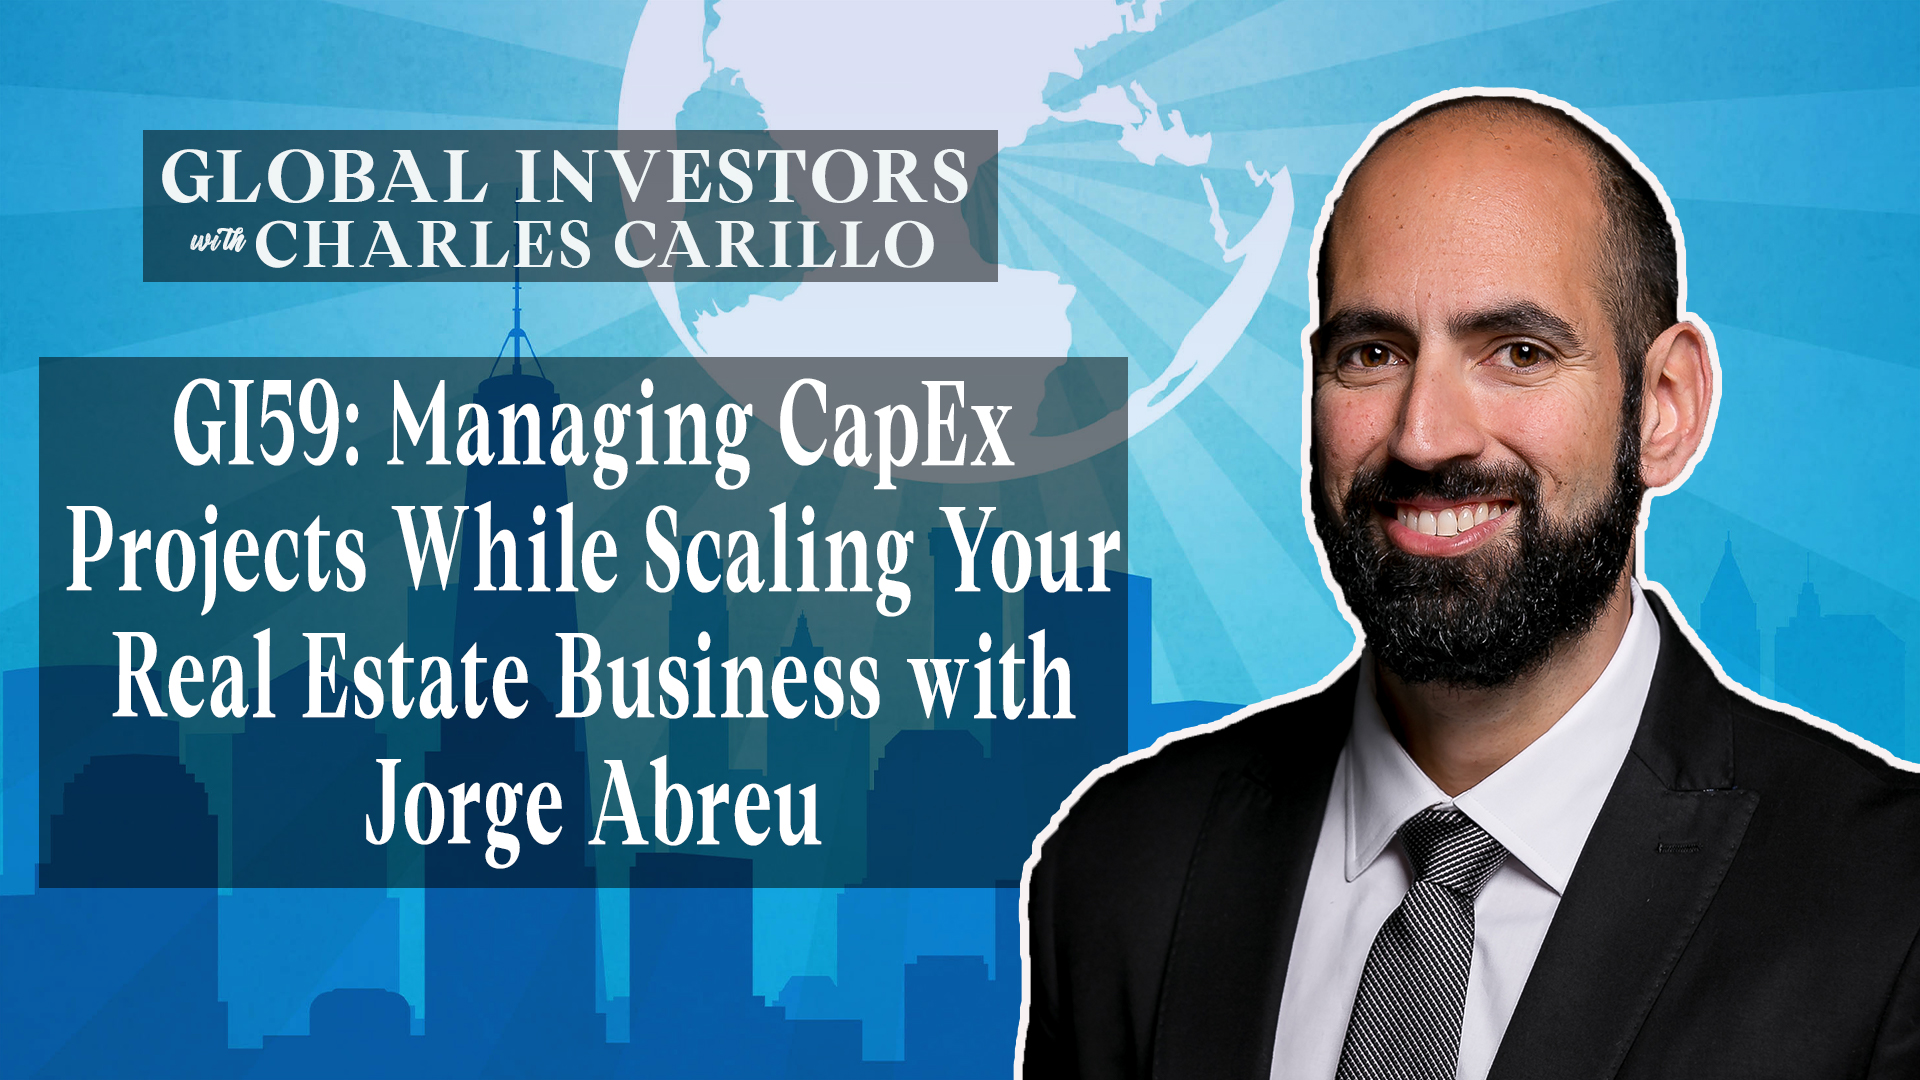 Managing CapEx Projects While Scaling Your Real Estate Business with Jorge Abreu